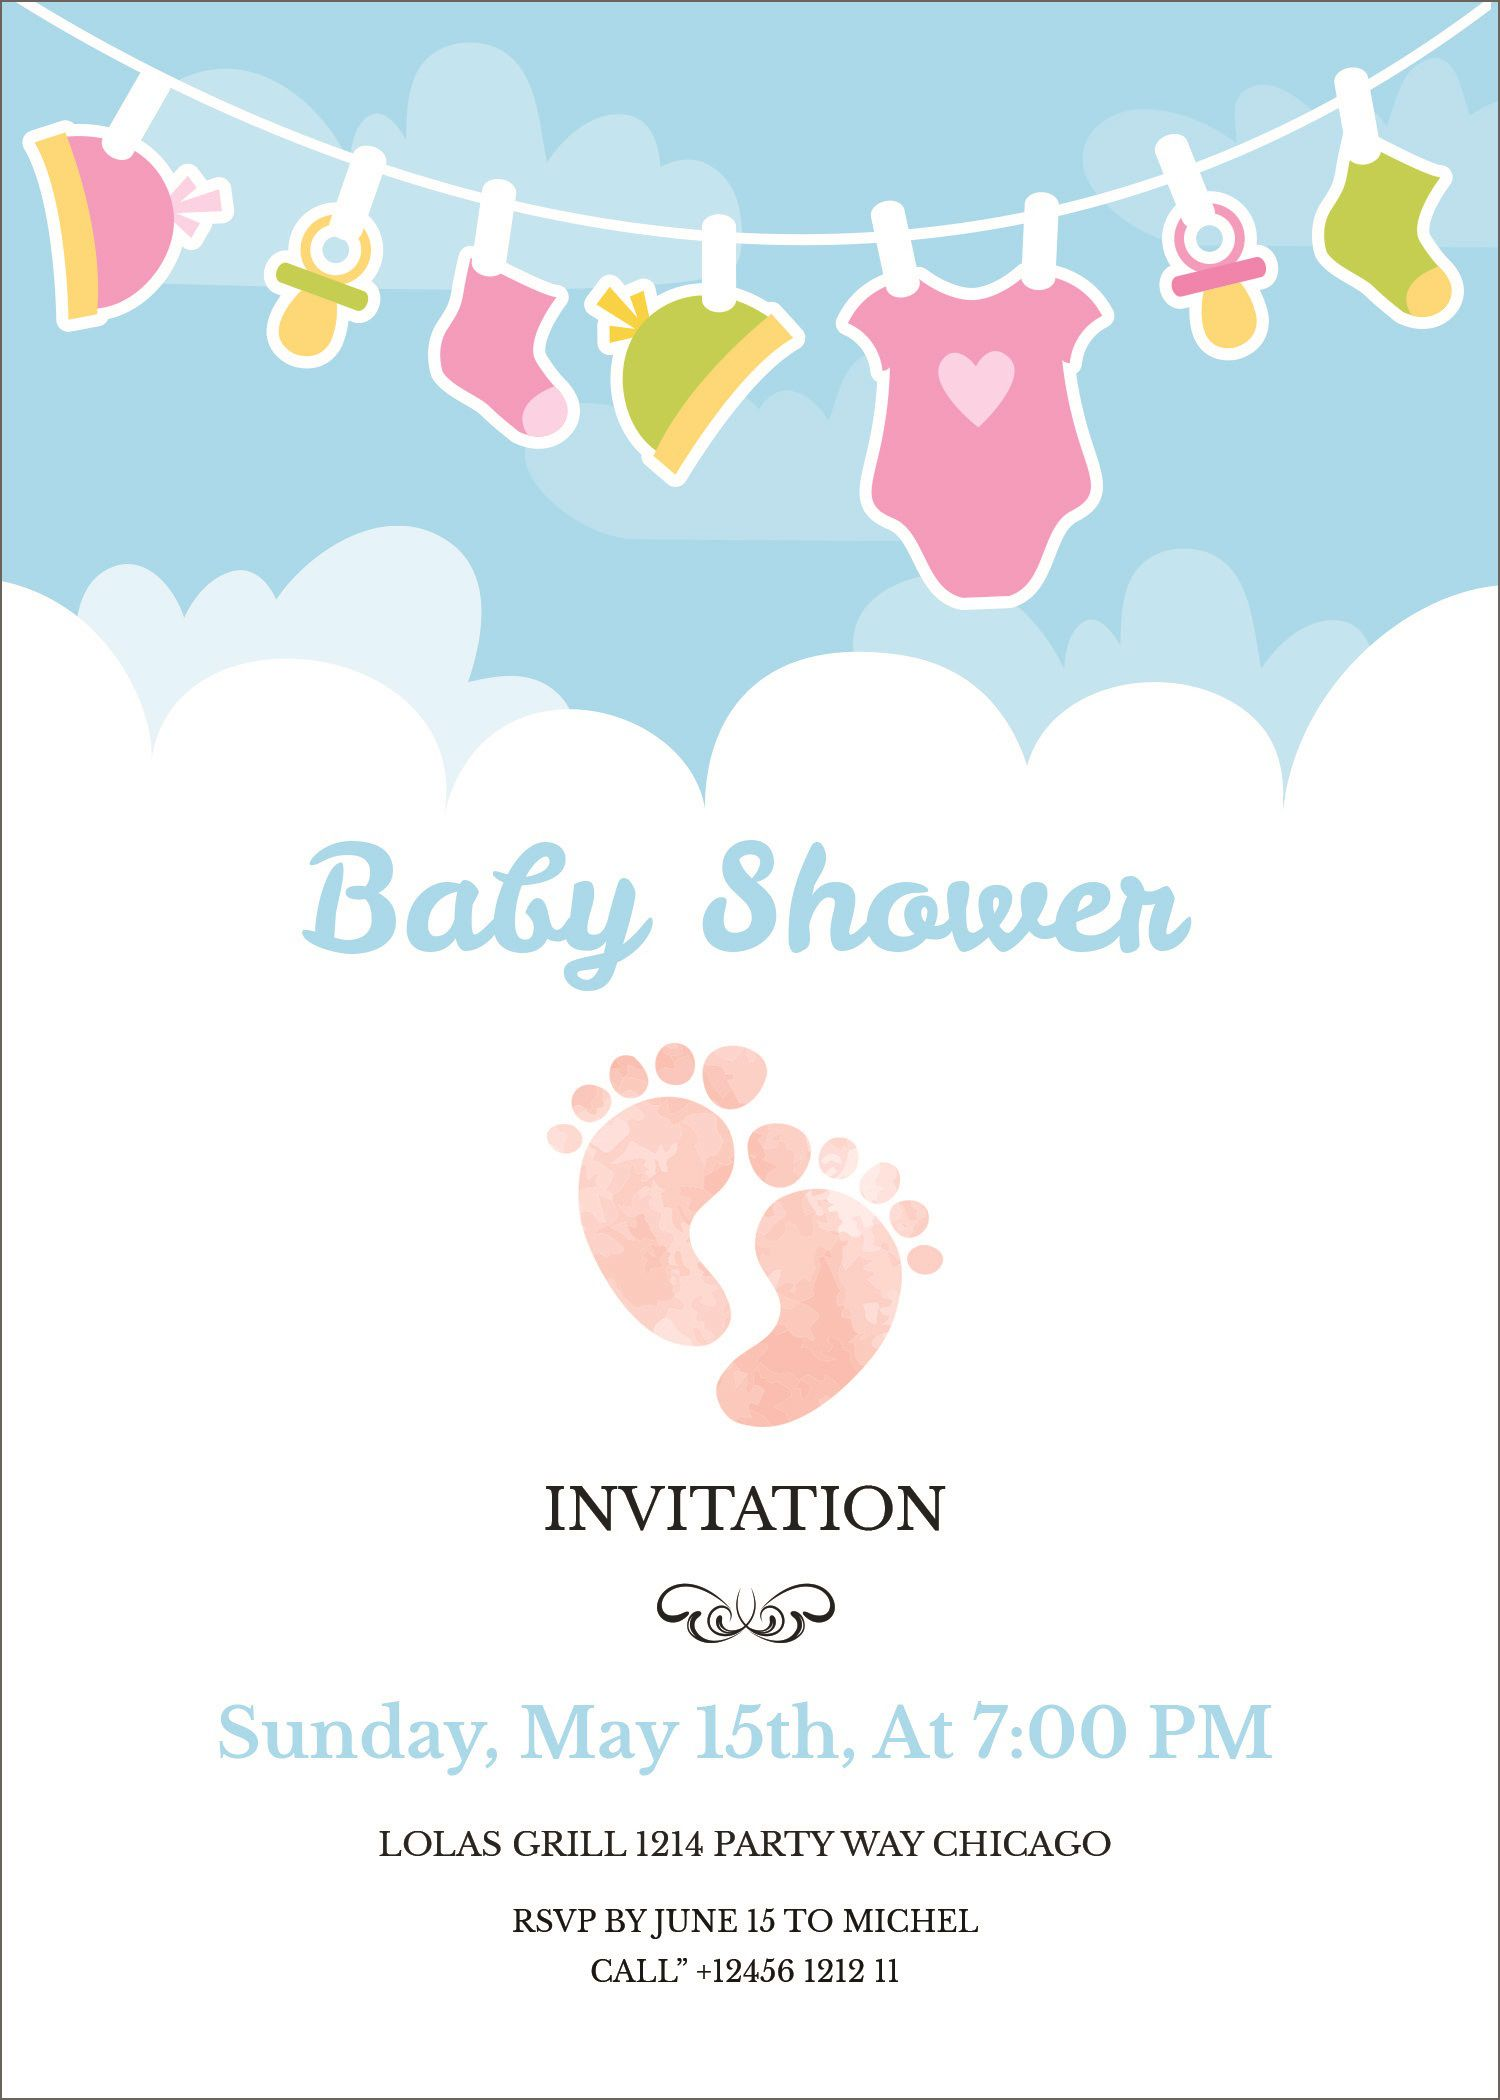 004 Exceptional Baby Shower Invitation Template Image  Editable Girl Downloadable Free Pdf VirtualFull